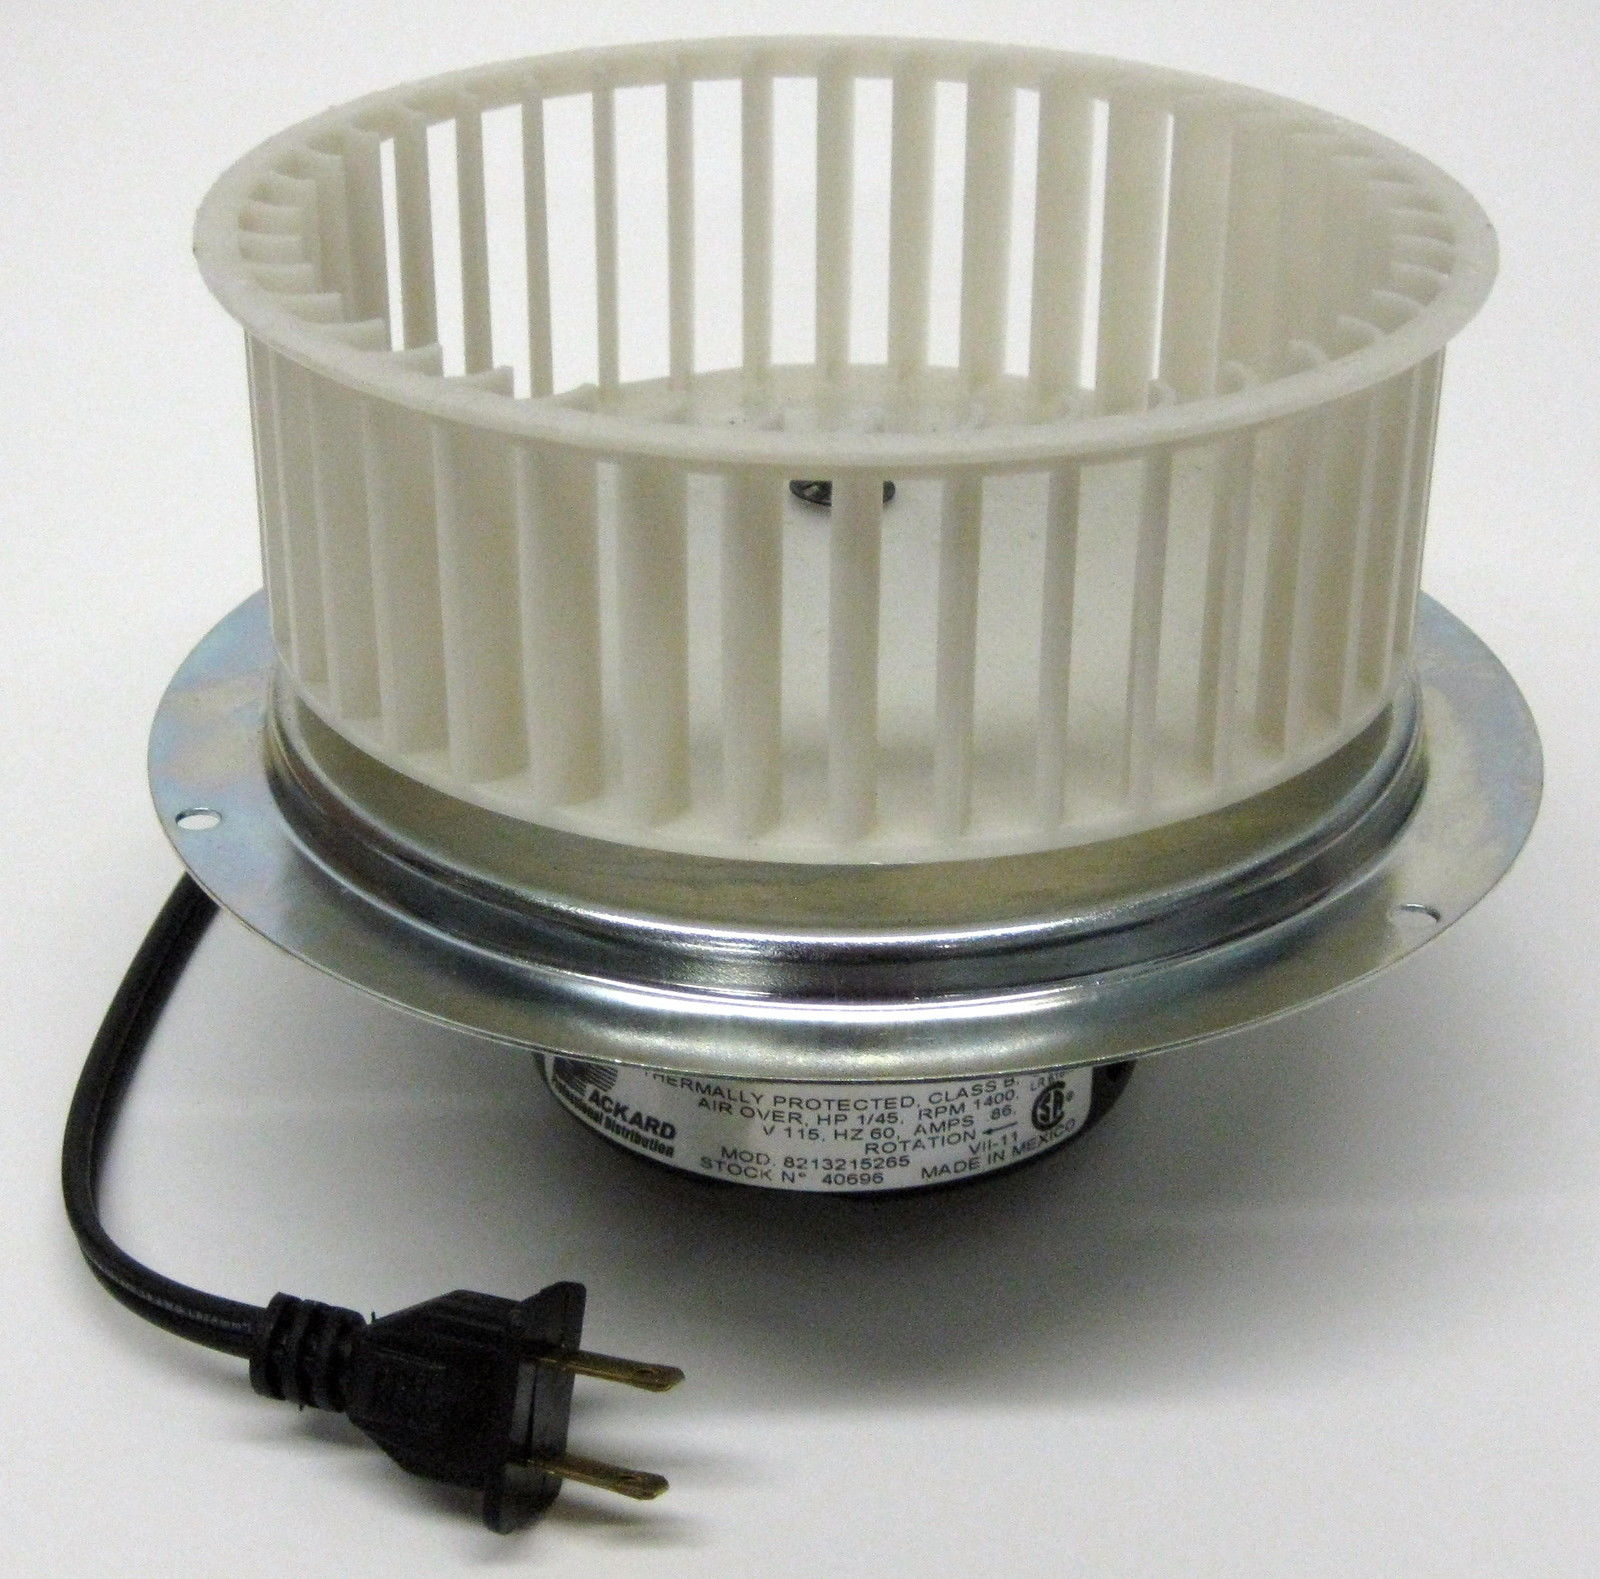 Aardedraad Badkamer 40696 Vent Bath Fan Motor And Blower Wheel For 0696b000